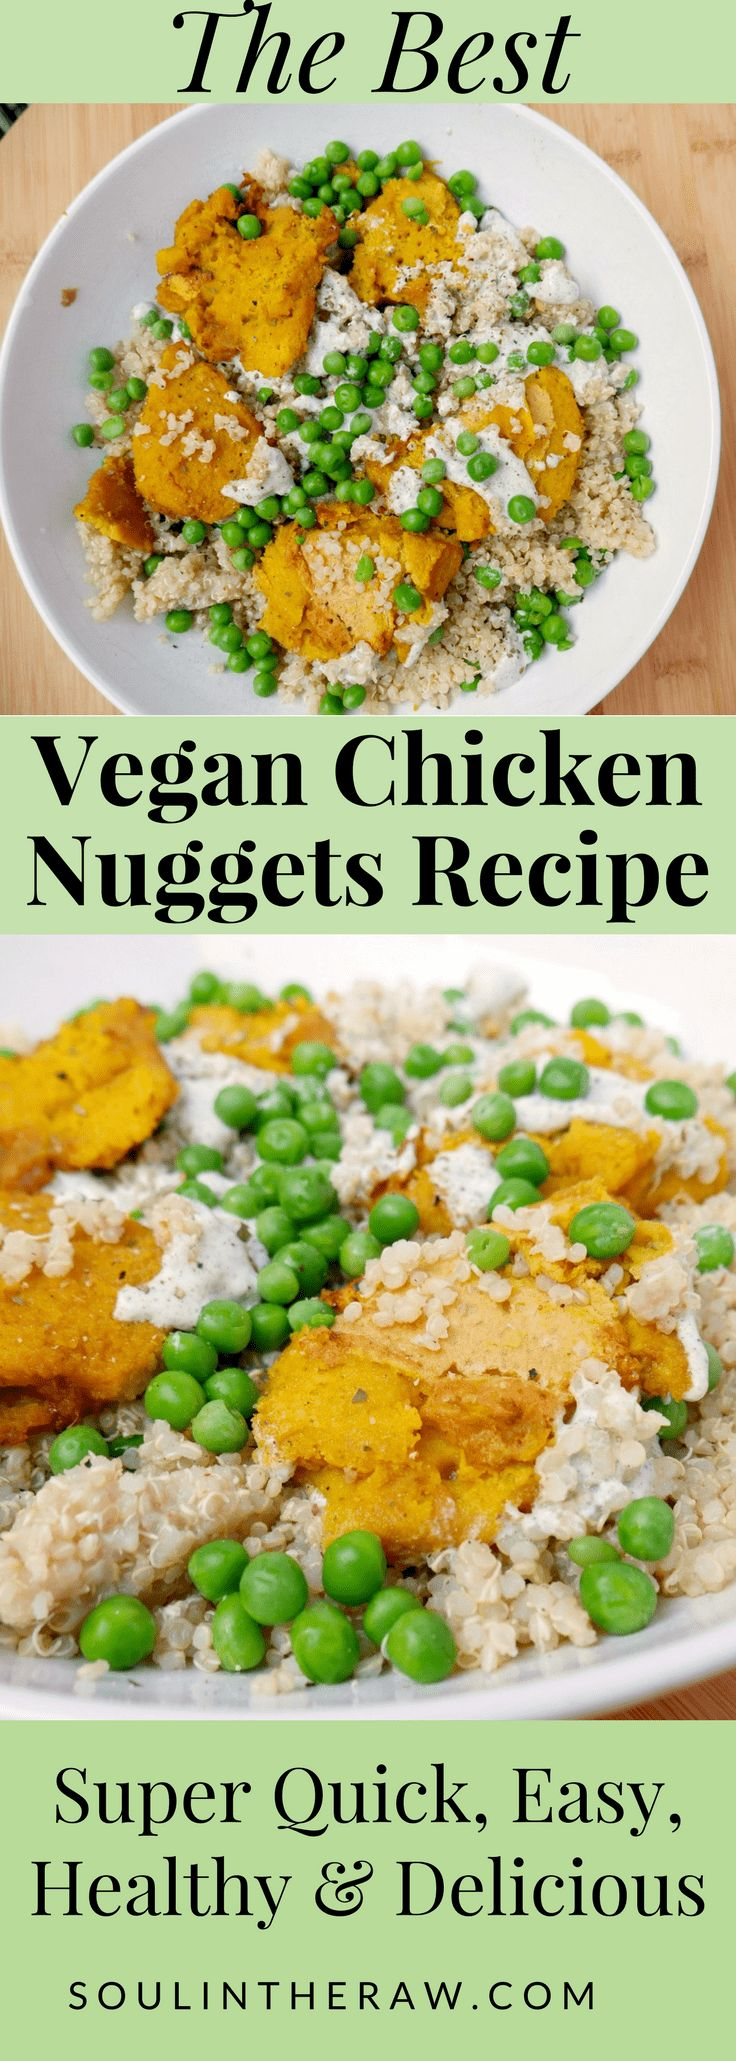 These vegan chicken nuggets are absolutely delicious, and super simple! They are such a great alternative to chicken, because these vegan chicken nuggets are made with amazing and clean ingredients. Who needs chicken when you have these plant based chicken nuggets? Check out the full recipe on the blog, and make them asap!